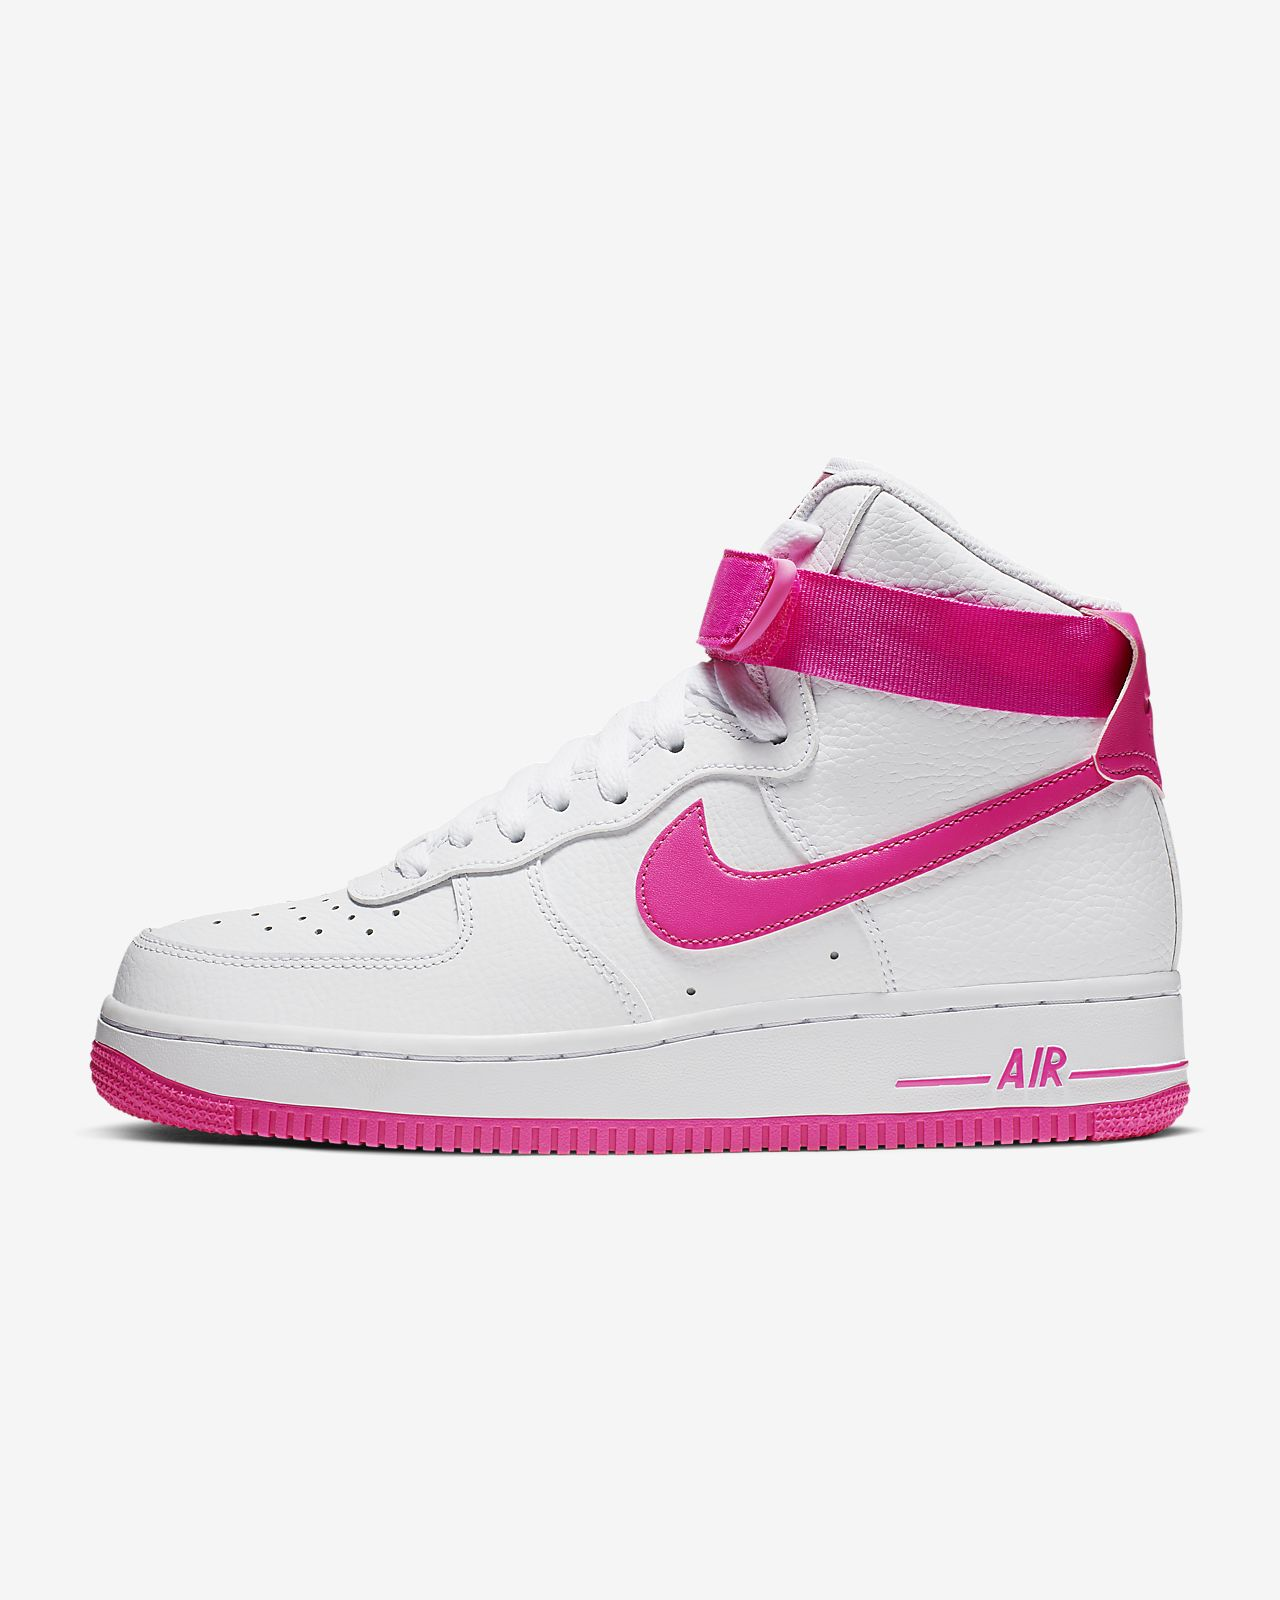 89ece6df Женские кроссовки Nike Air Force 1 High 08 LE. Nike.com RU